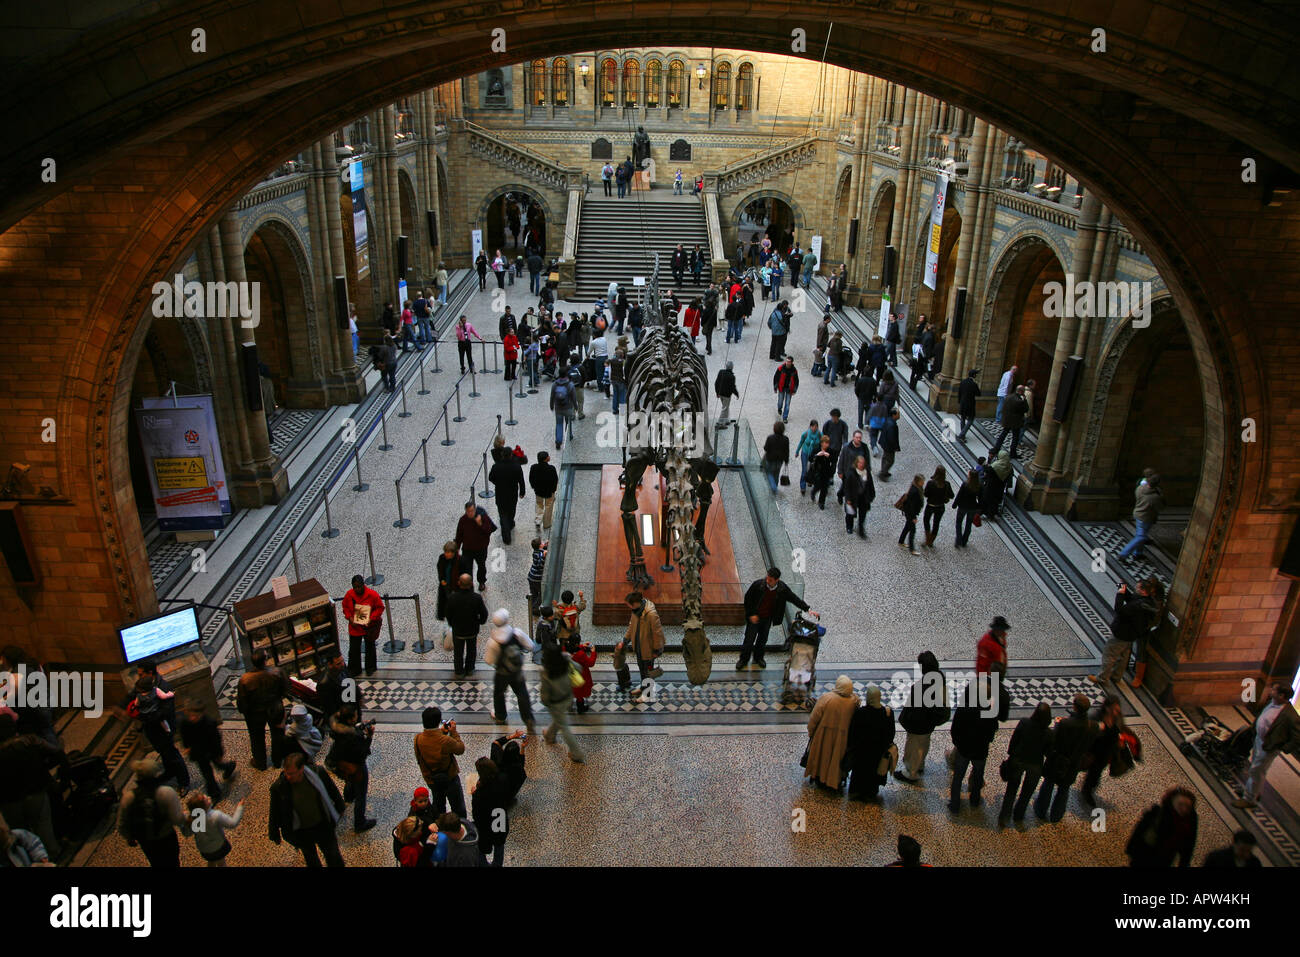 Natural History Museum london tourist attraction - Stock Image